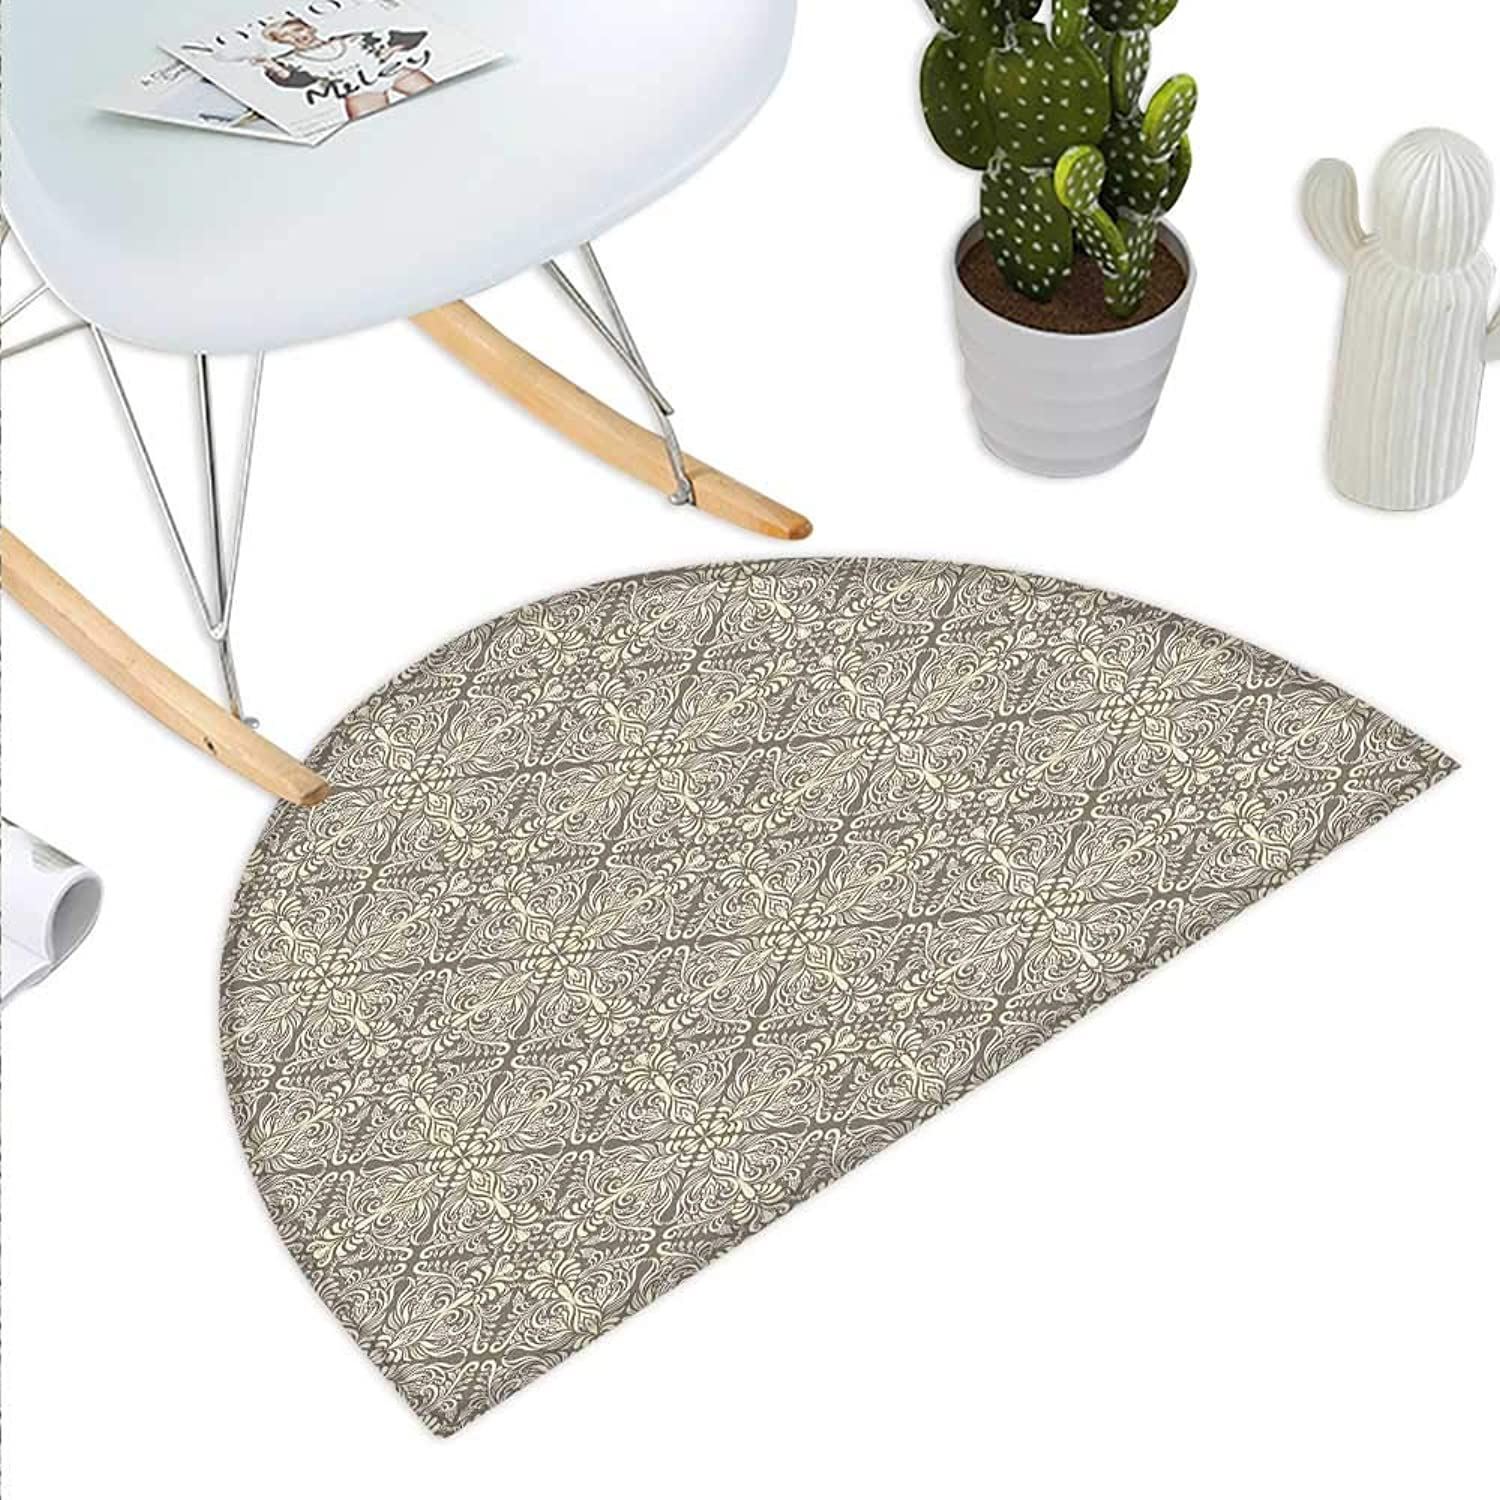 Vintage Semicircle Doormat Hand Drawn Style Arabesque Floral Ornament Byzantine Damask Style Curly Leaves Halfmoon doormats H 43.3  xD 64.9  Taupe and Beige